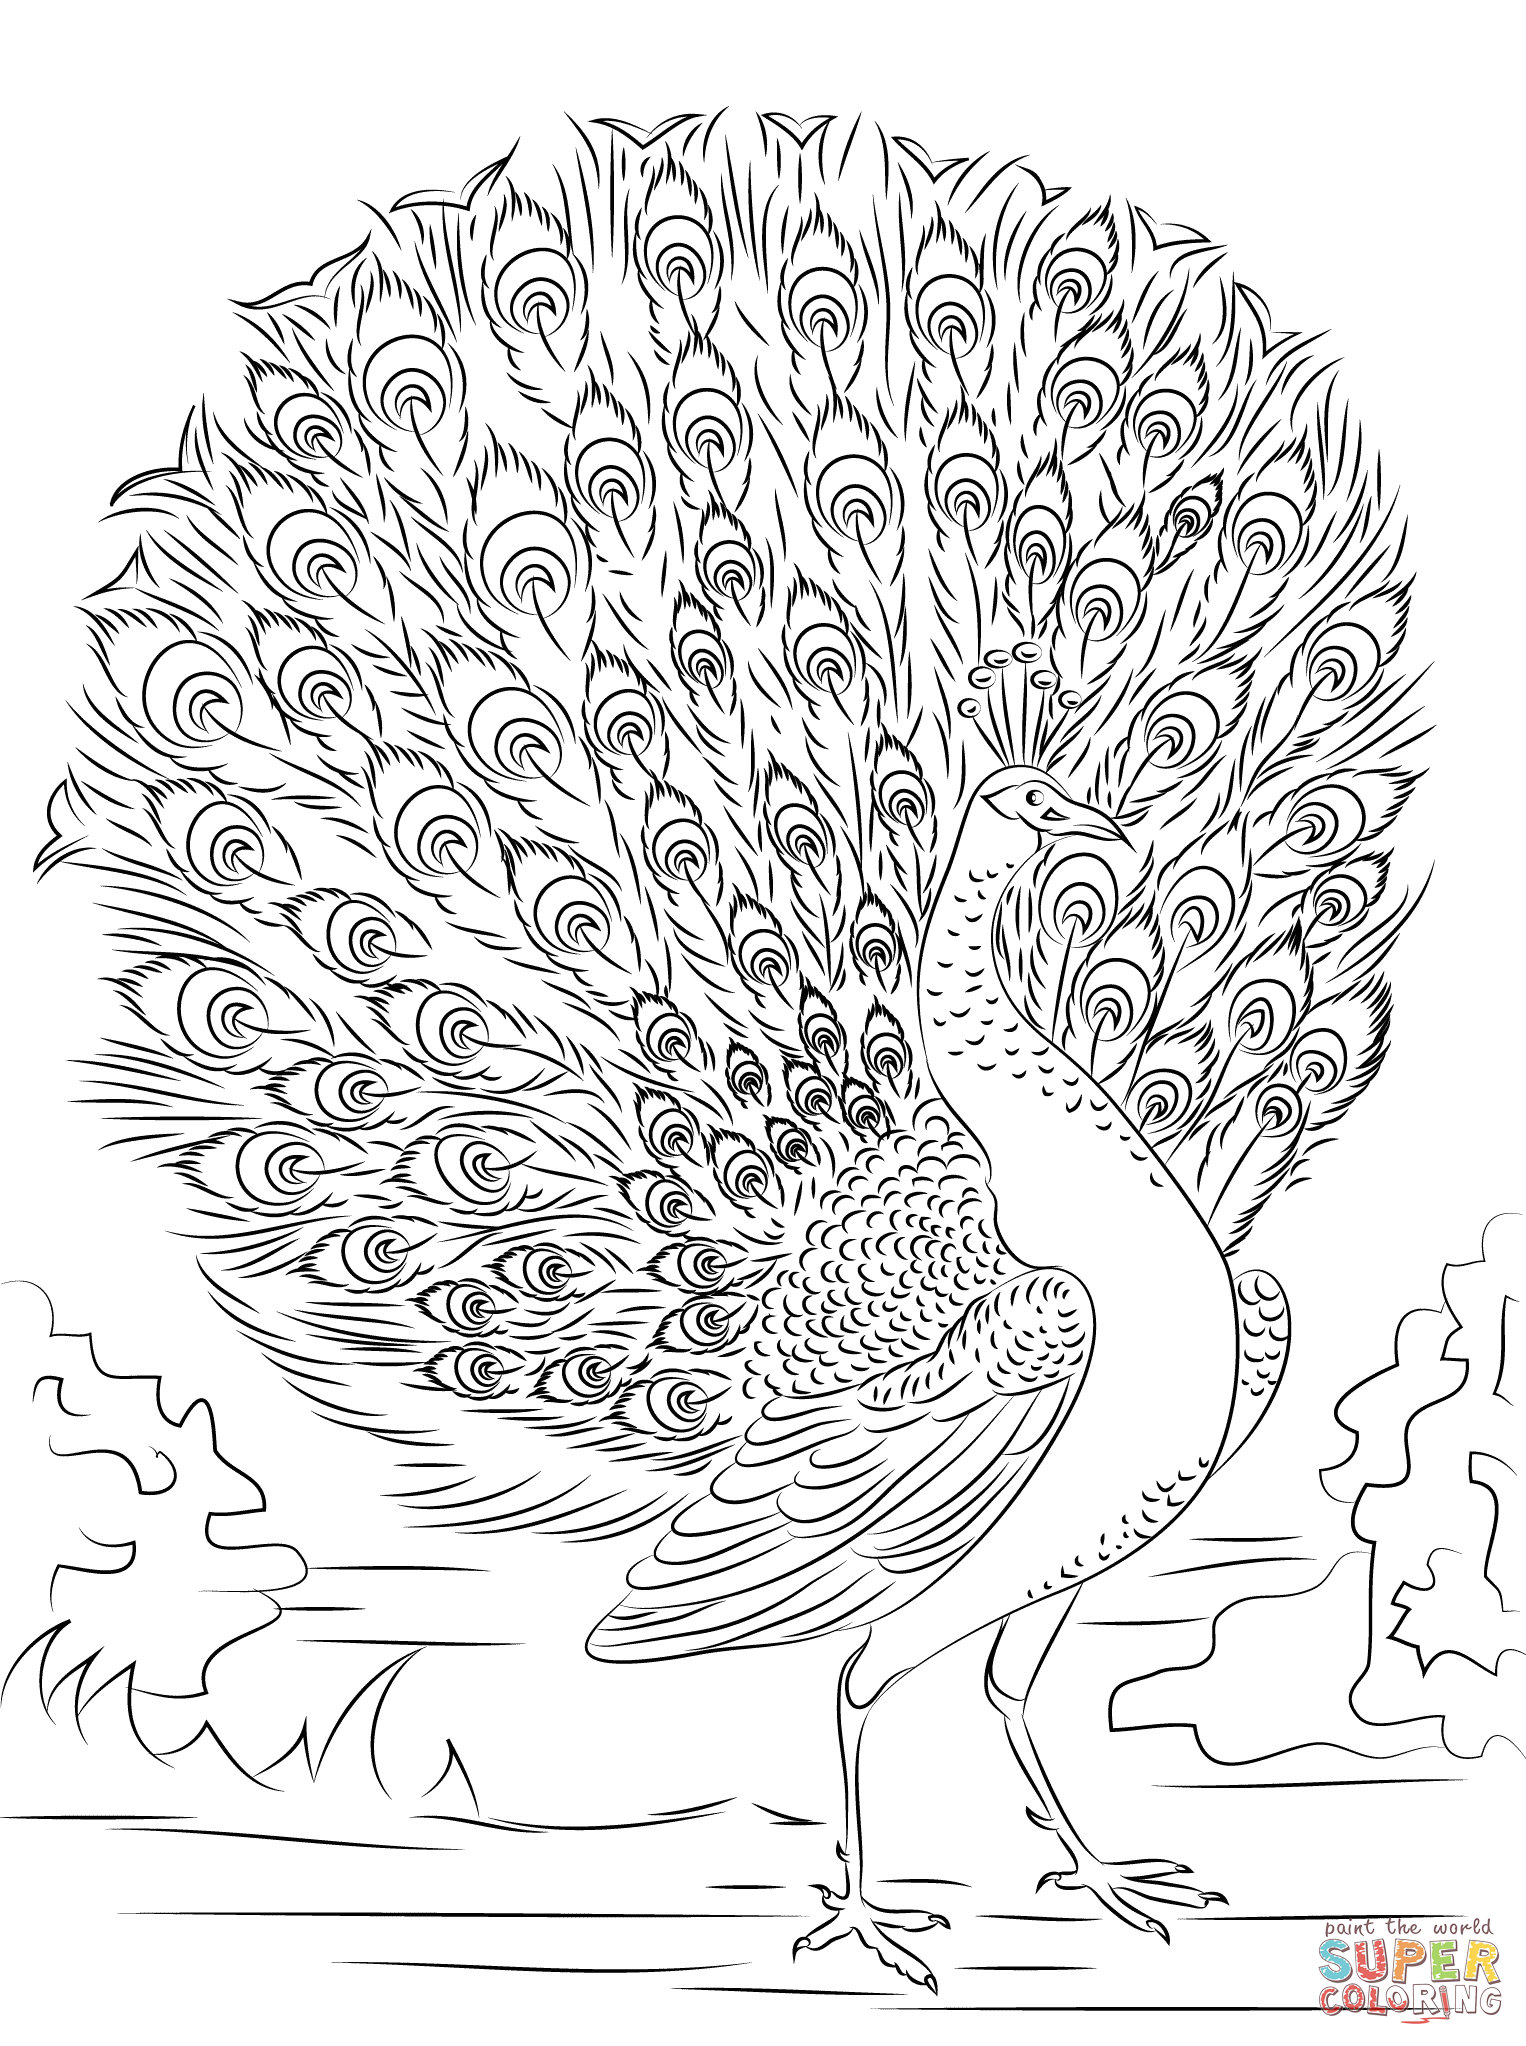 advanced coloring pages for artists bing images - Advanced Coloring Books